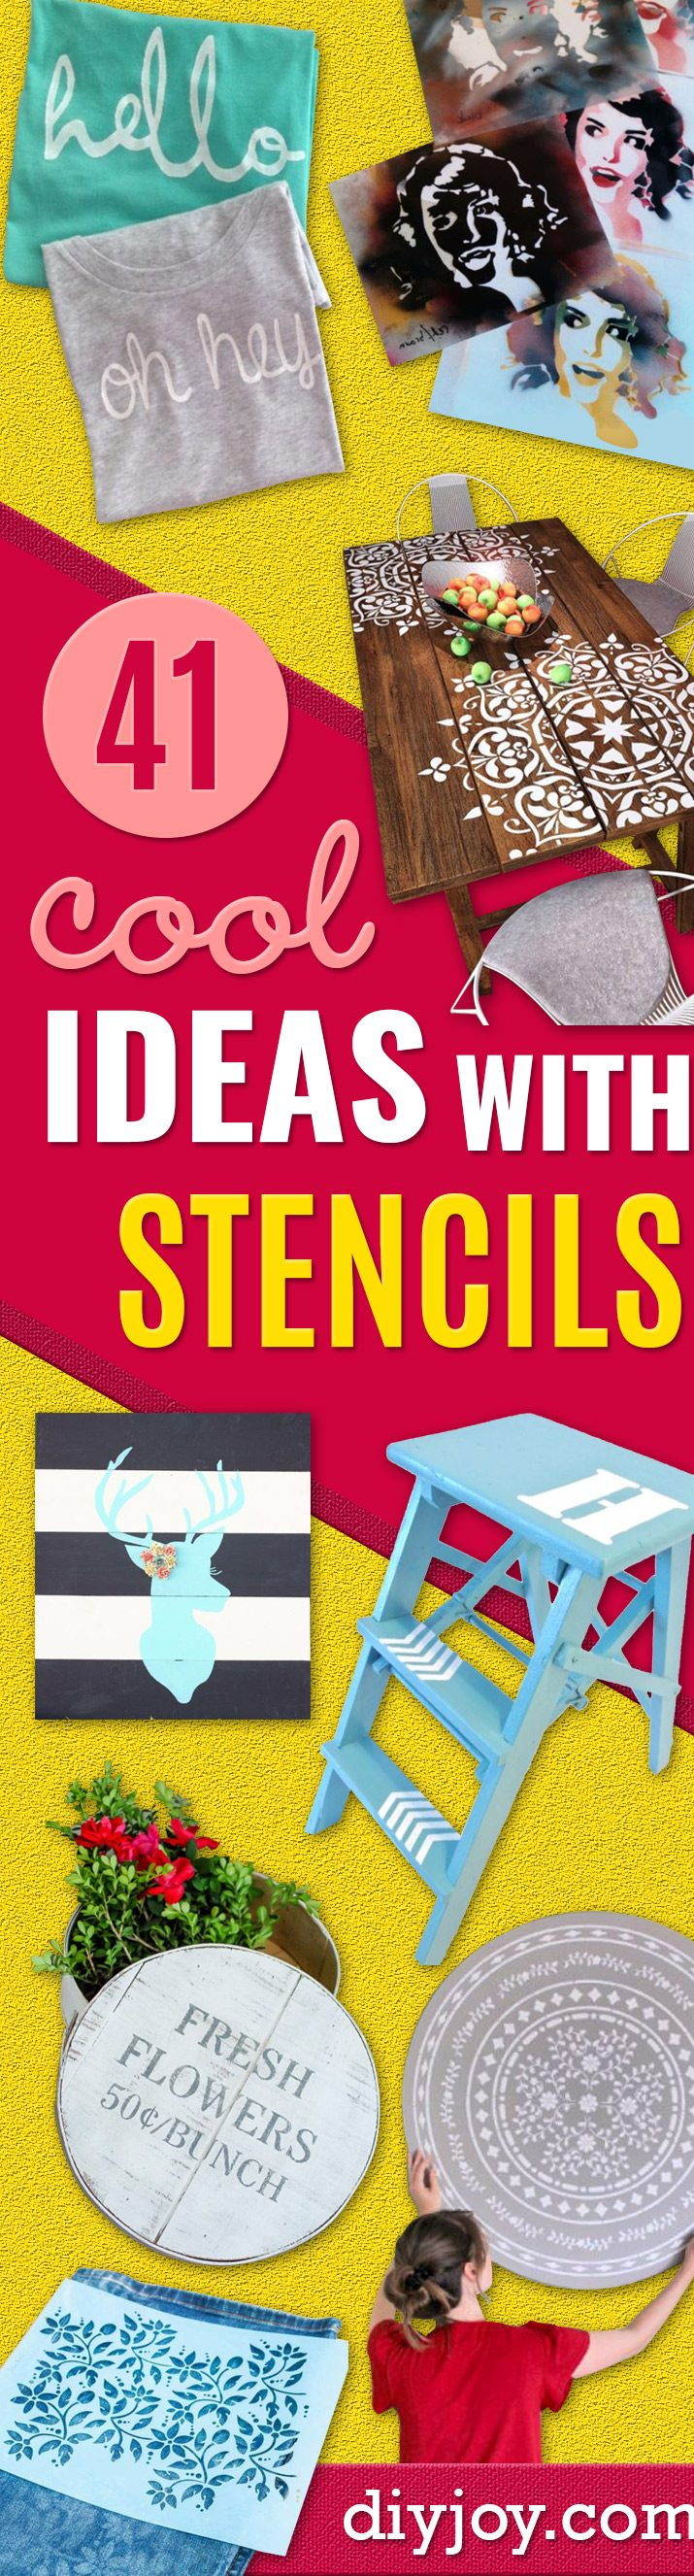 DIY Stencil Ideas - Cool and Easy Stenciling Tutorials For Making Handmade Wallpaper and Designs, Furniture Makeover Ideas and Crafty Modern Decor With Stencils - Rustic Farmhouse Paint Techniques and Step by Step Instructions for Using Stencil Art in Your Living Room, Bedroom, Bathroom and Crafts - How to Stencil Crafts Idea